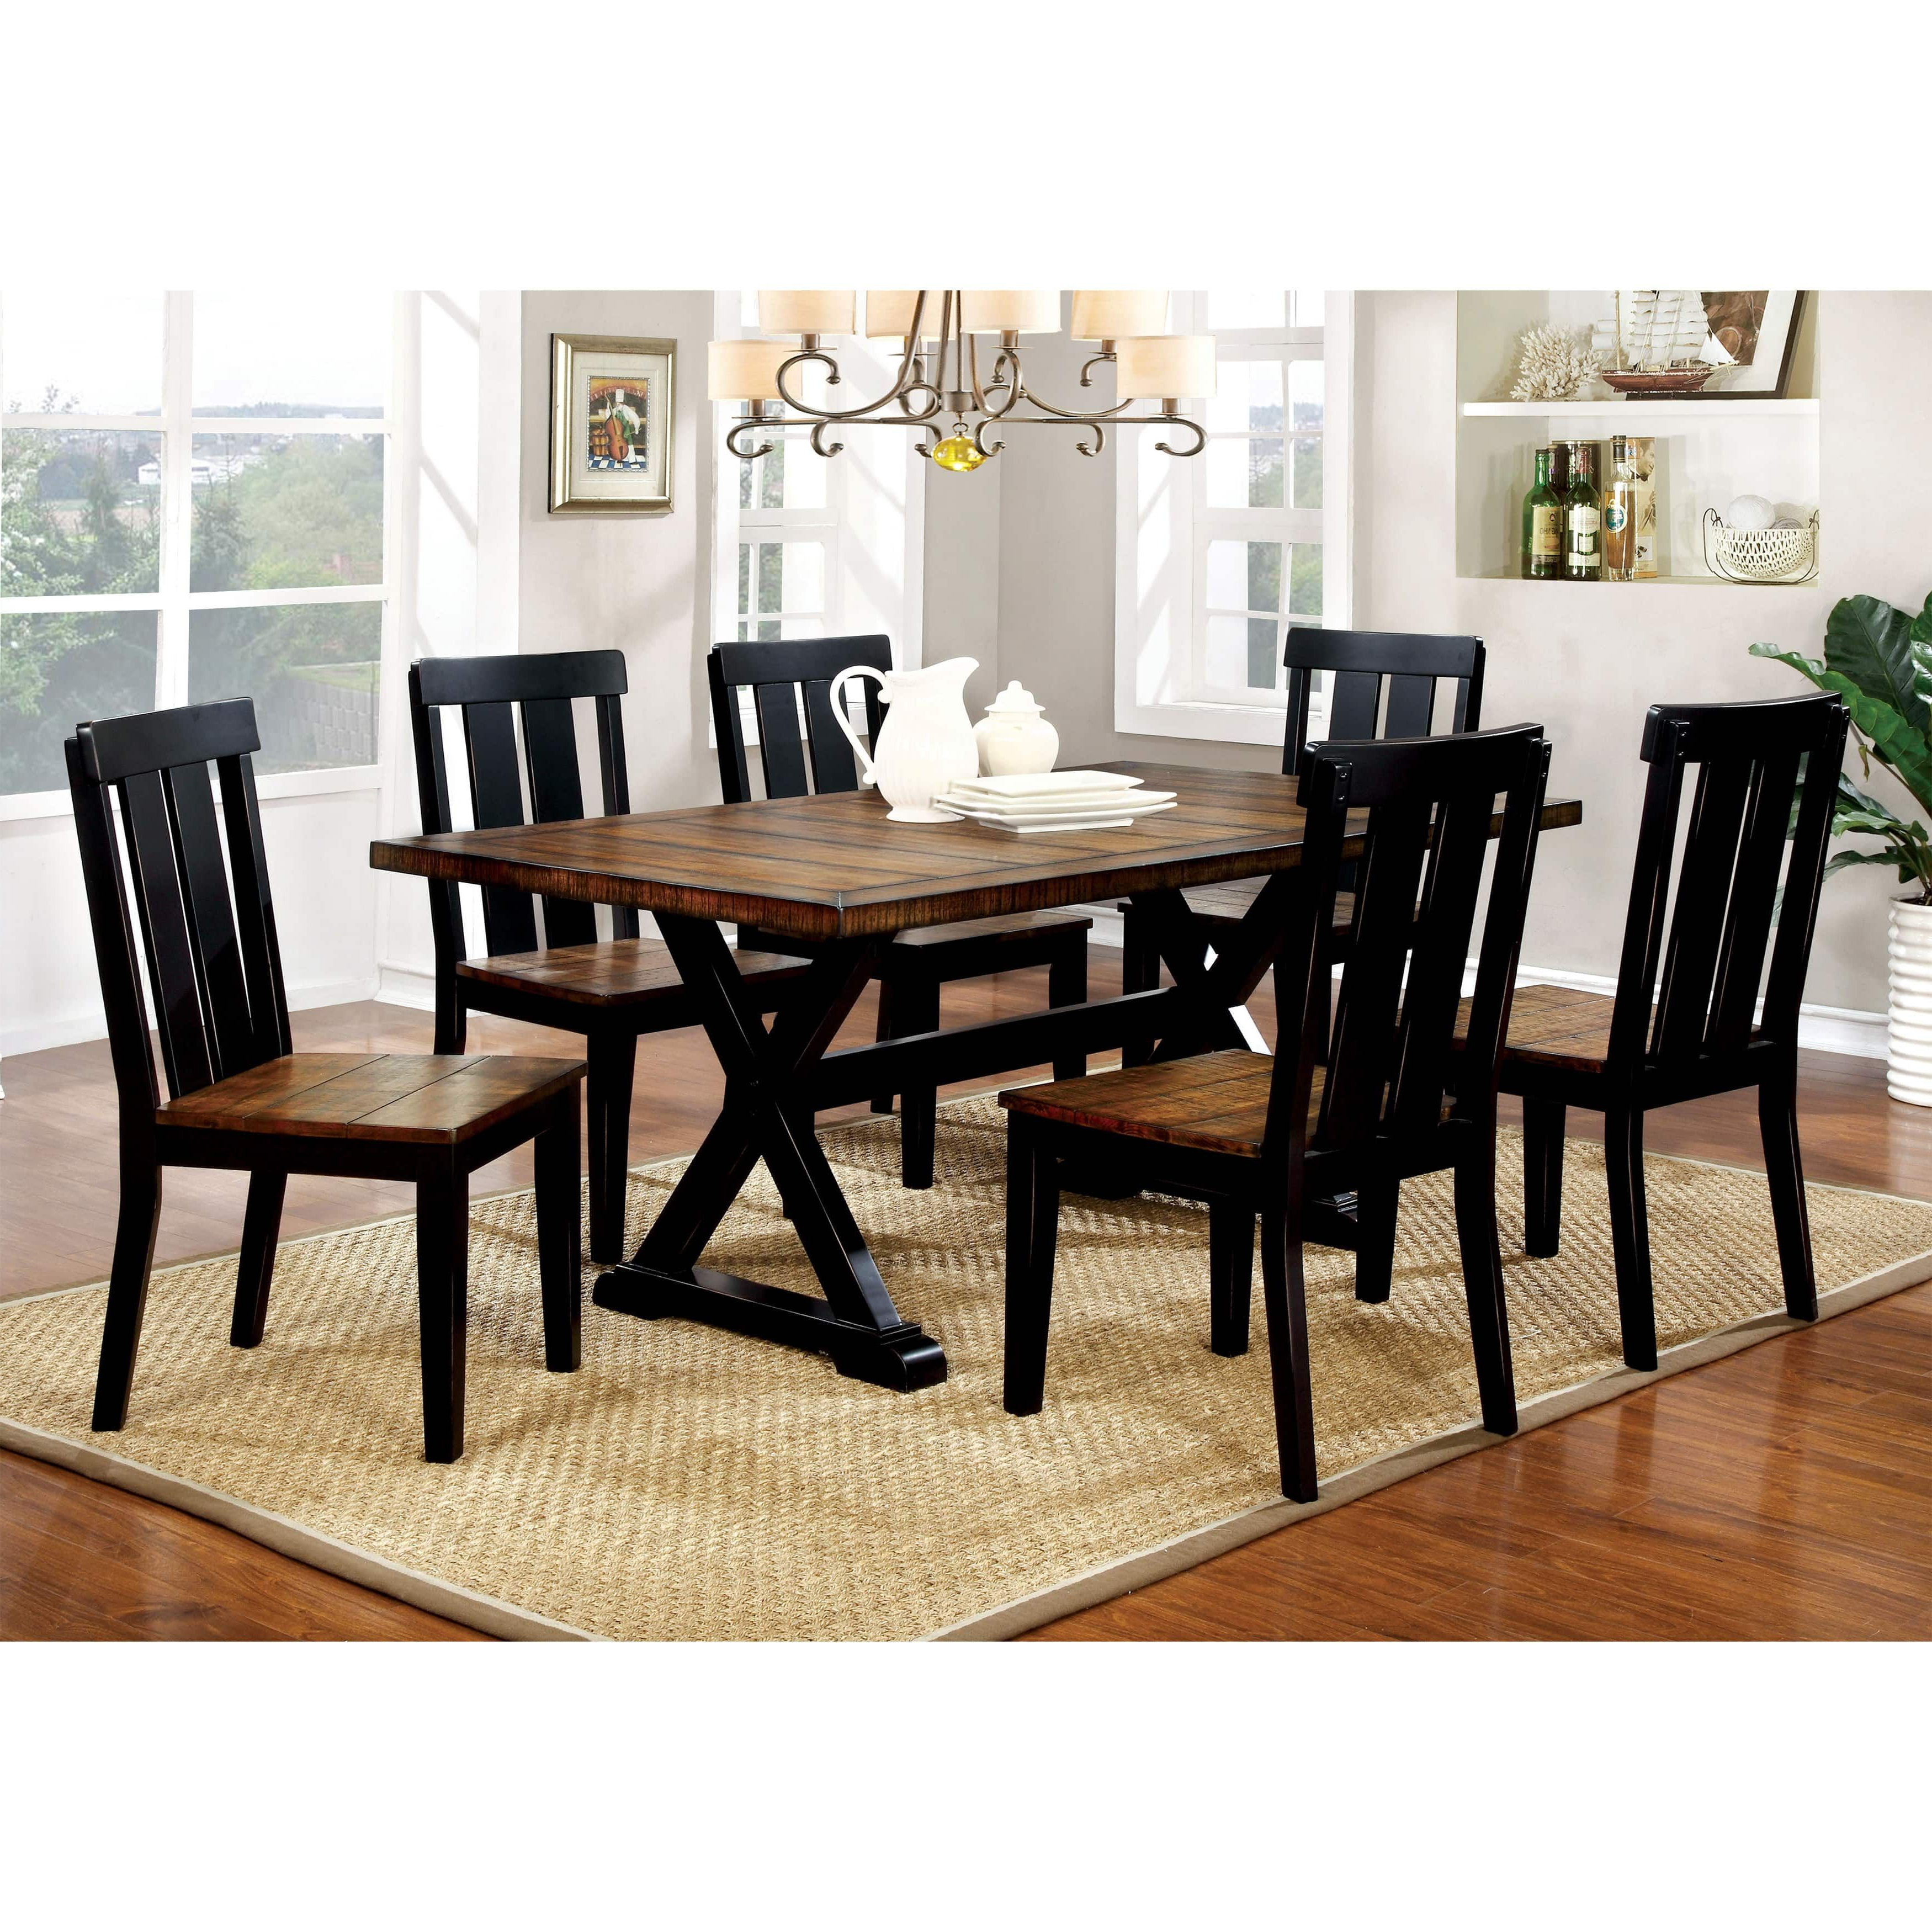 Well Liked Furniture Of America Lara Farmhouse Style 7 Piece Two Tone Antique Pertaining To Goodman 5 Piece Solid Wood Dining Sets (Set Of 5) (View 22 of 25)